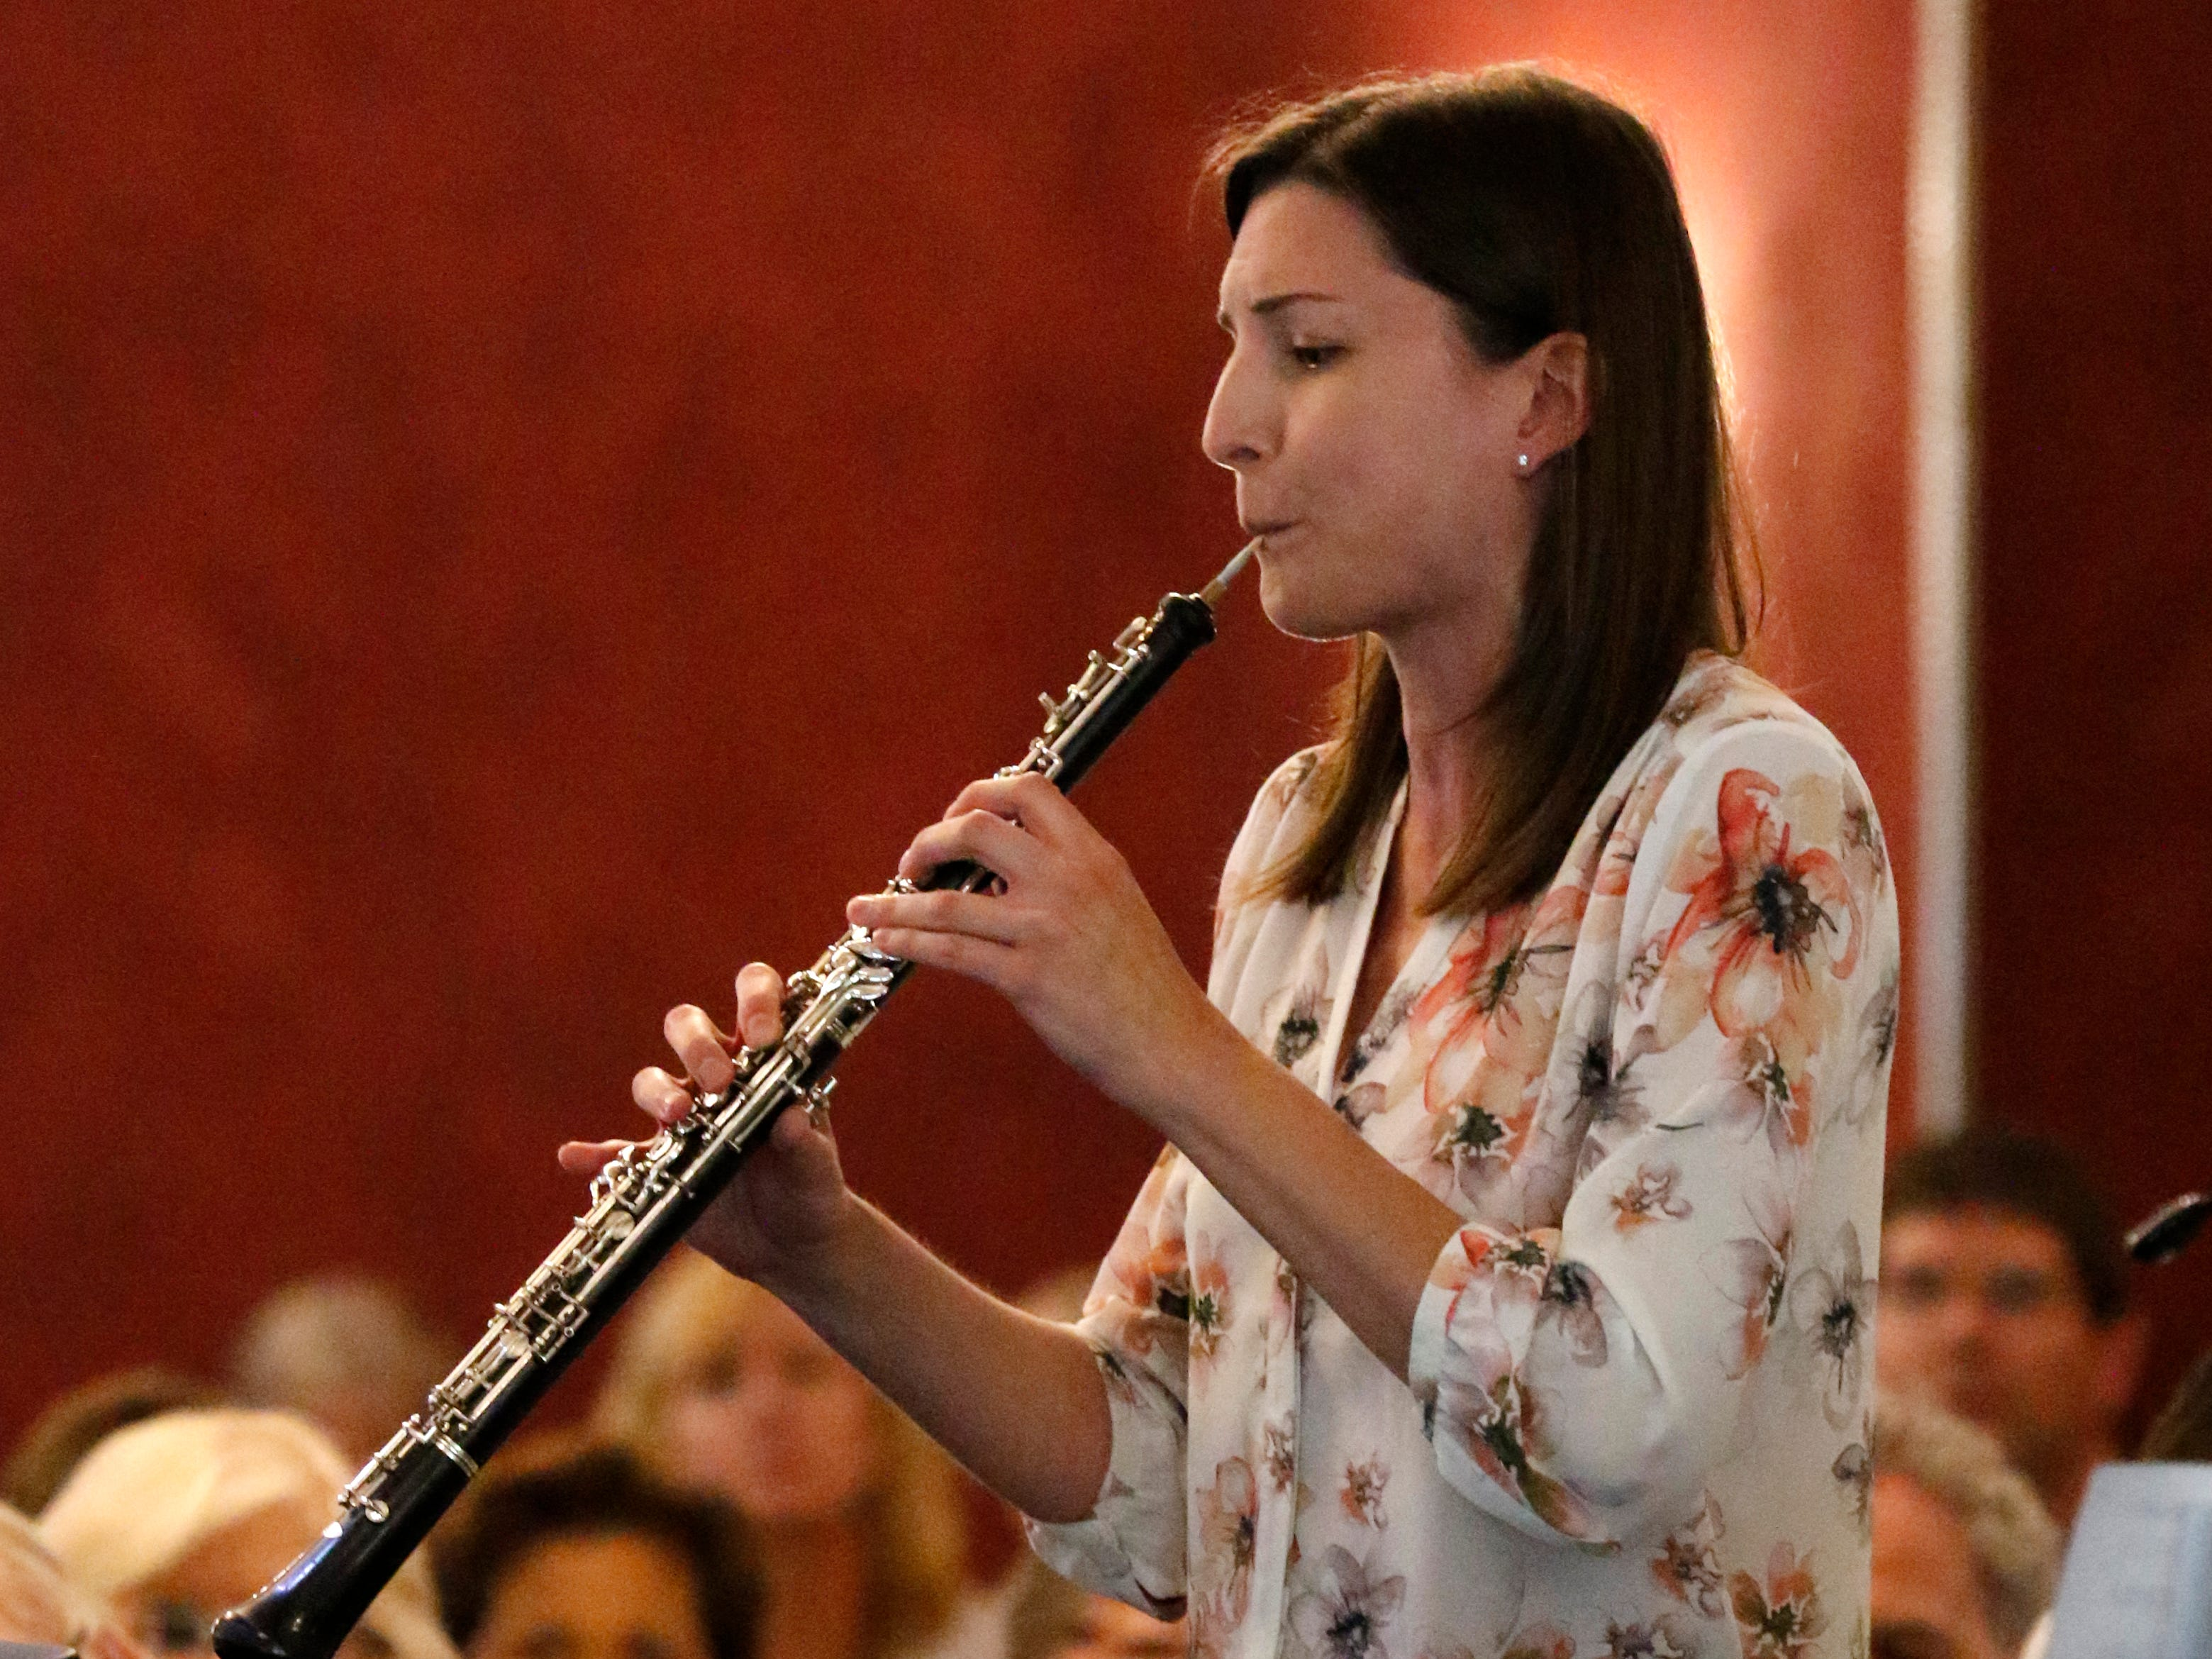 Erin Banholzer performs Friday afternoon, July 27, 2018, during a Lancaster Festival Cafe Concert at the Lancaster Country Club in Hocking Township. The concert featured principal members from different sections of the Lancaster Festival Orchestra.